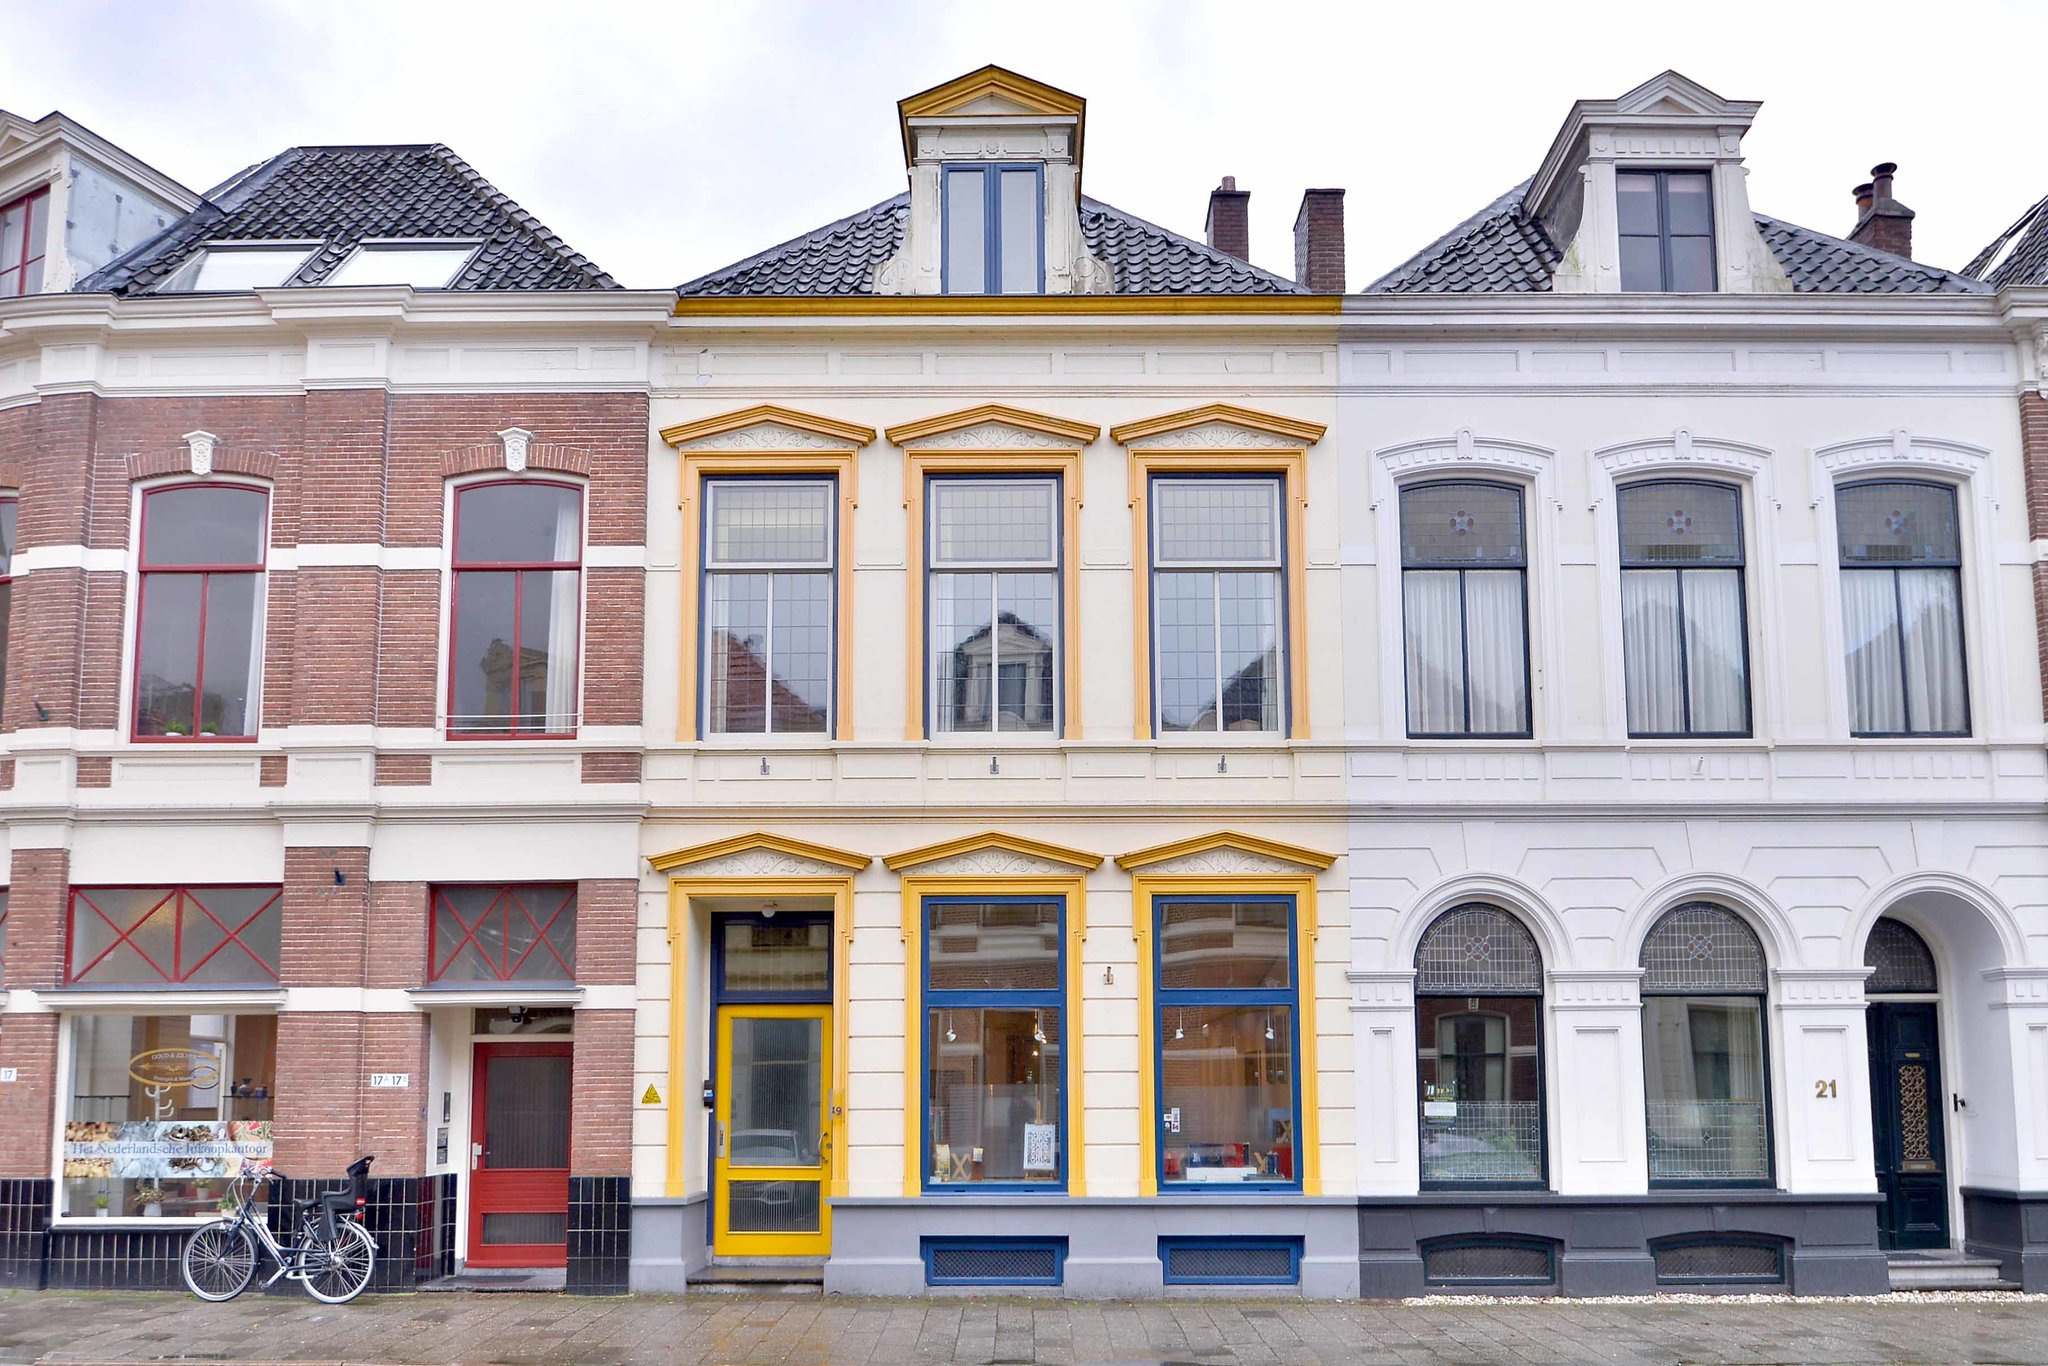 deventer-tg-gibsonstraat-3534570-foto-2.jpg